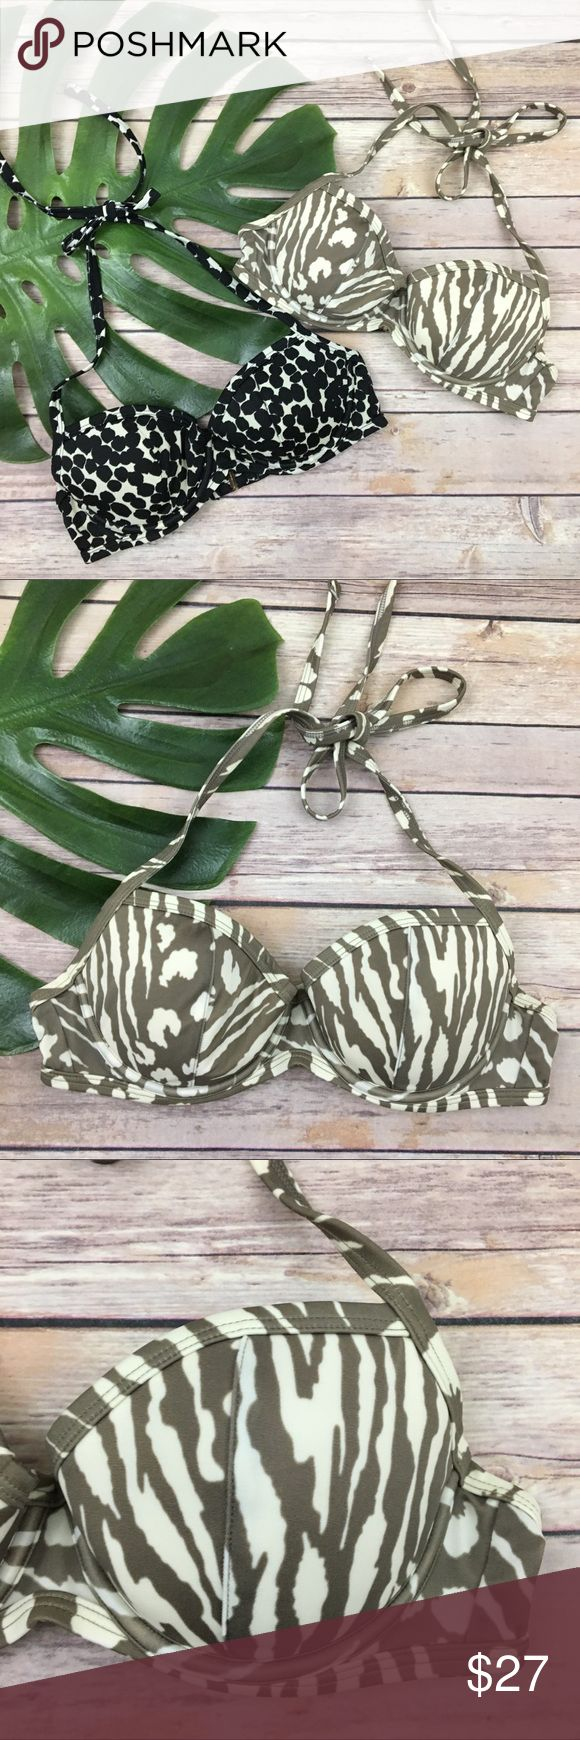 Set 2 Victoria's Secret animal print bikini tops Lot of 2 Victoria's Secret halter top bikini tops with underwire and push-up, size 34B. They are free from any rips or stains. The bands measure about 26 inches from end to end. Victoria's Secret Swim Bikinis